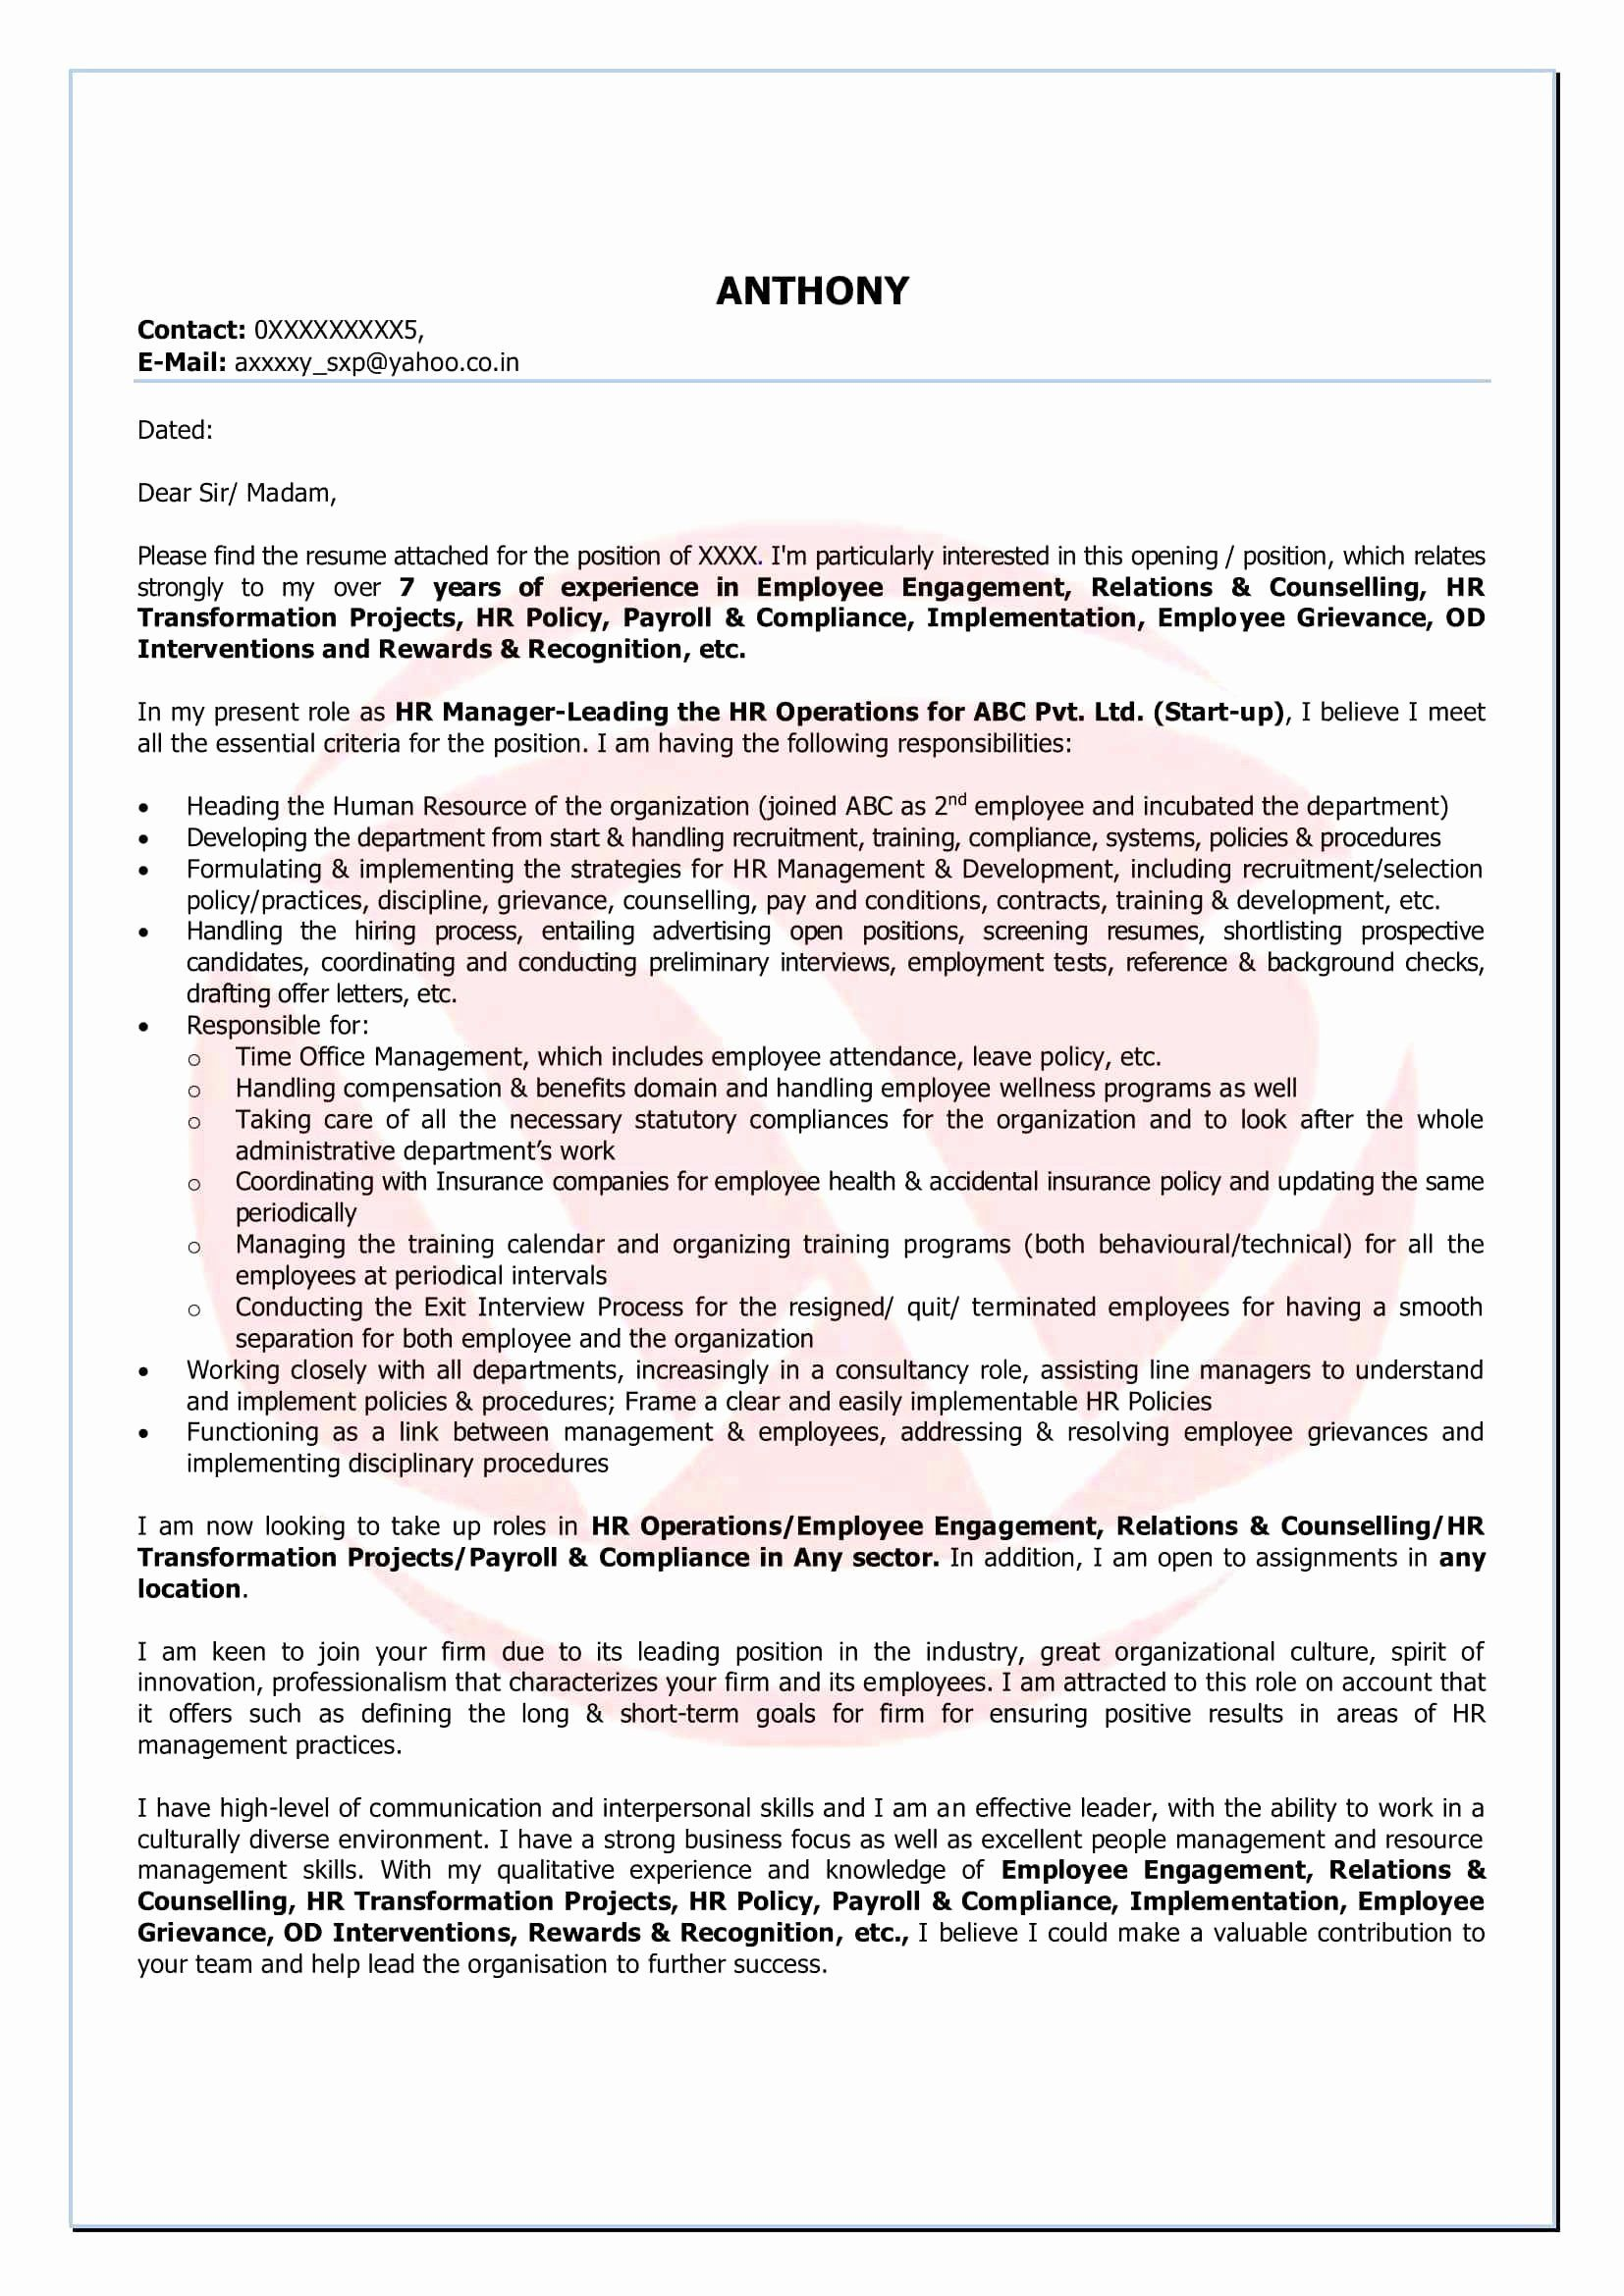 Bank Compliance Risk Assessment Template In 2020 Resume Template